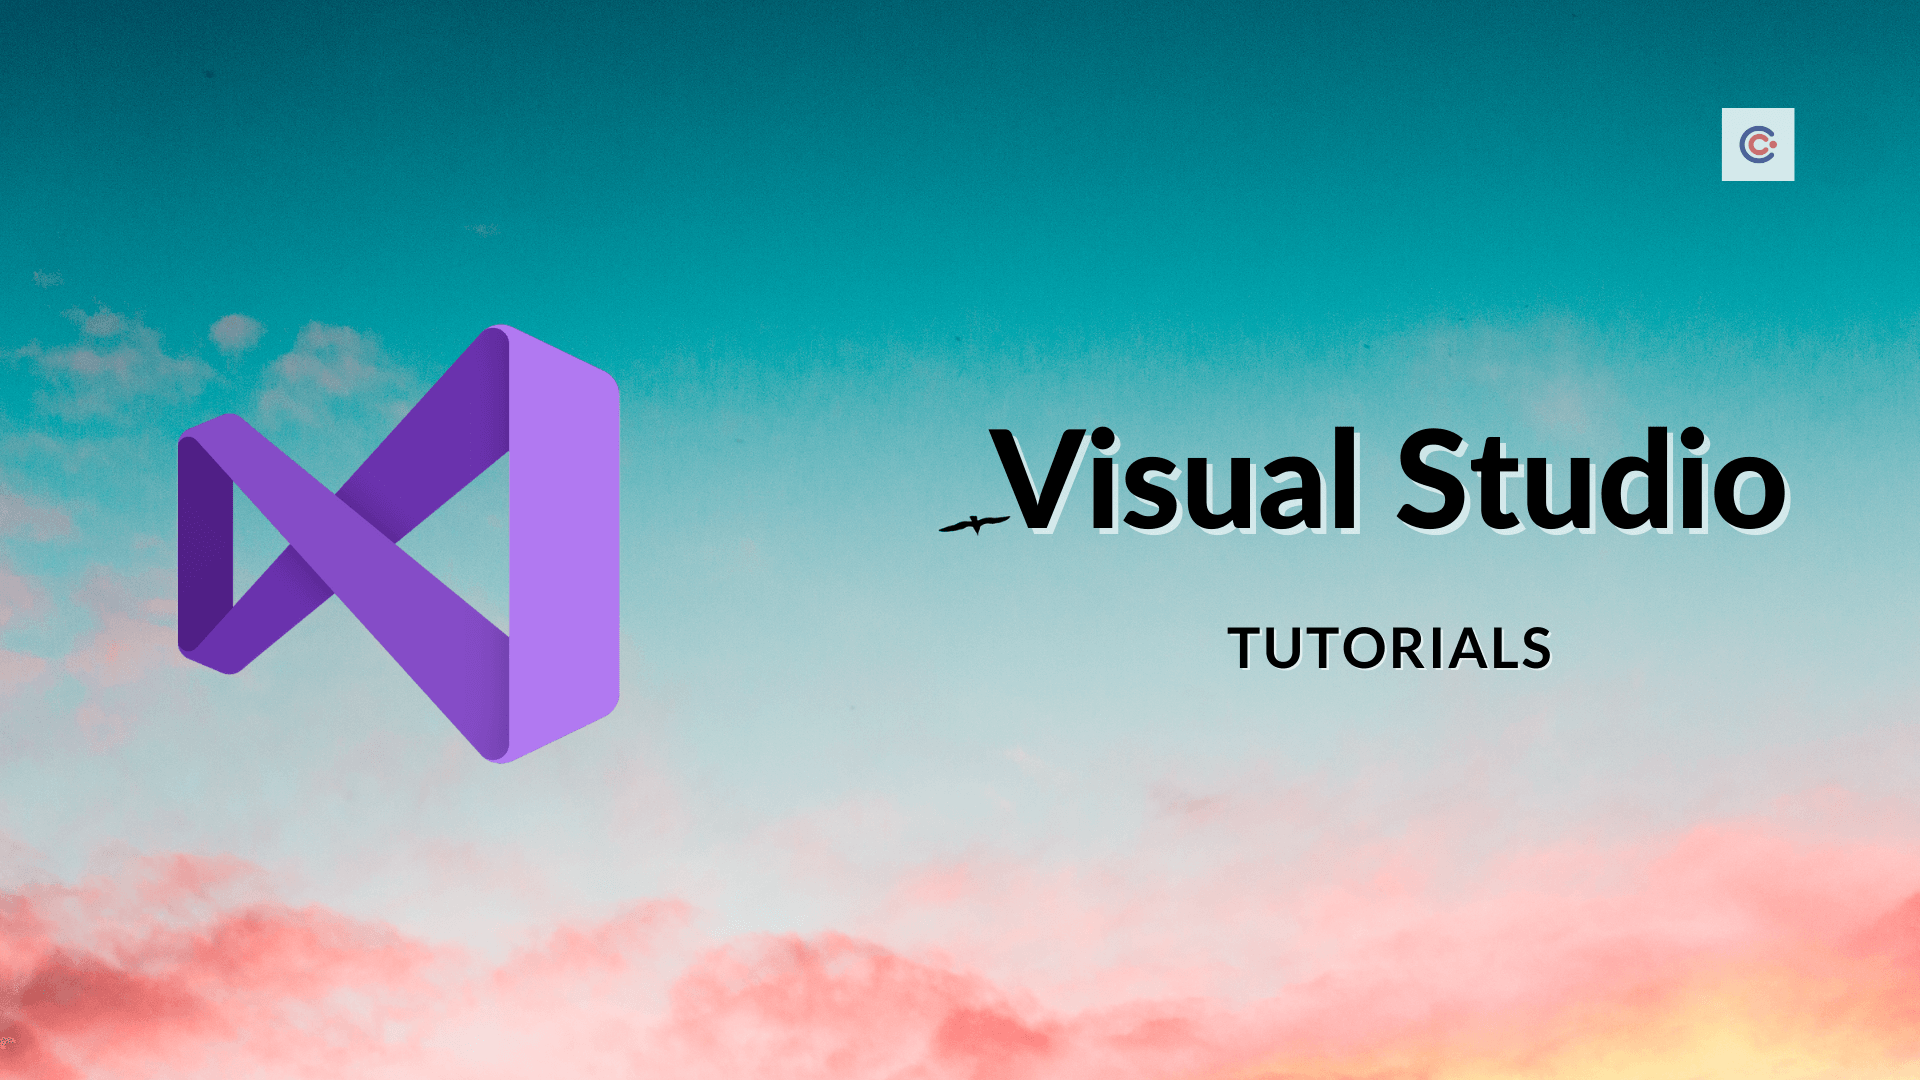 11 Best Visual Studio Tutorials - Learn Visual Studio Online